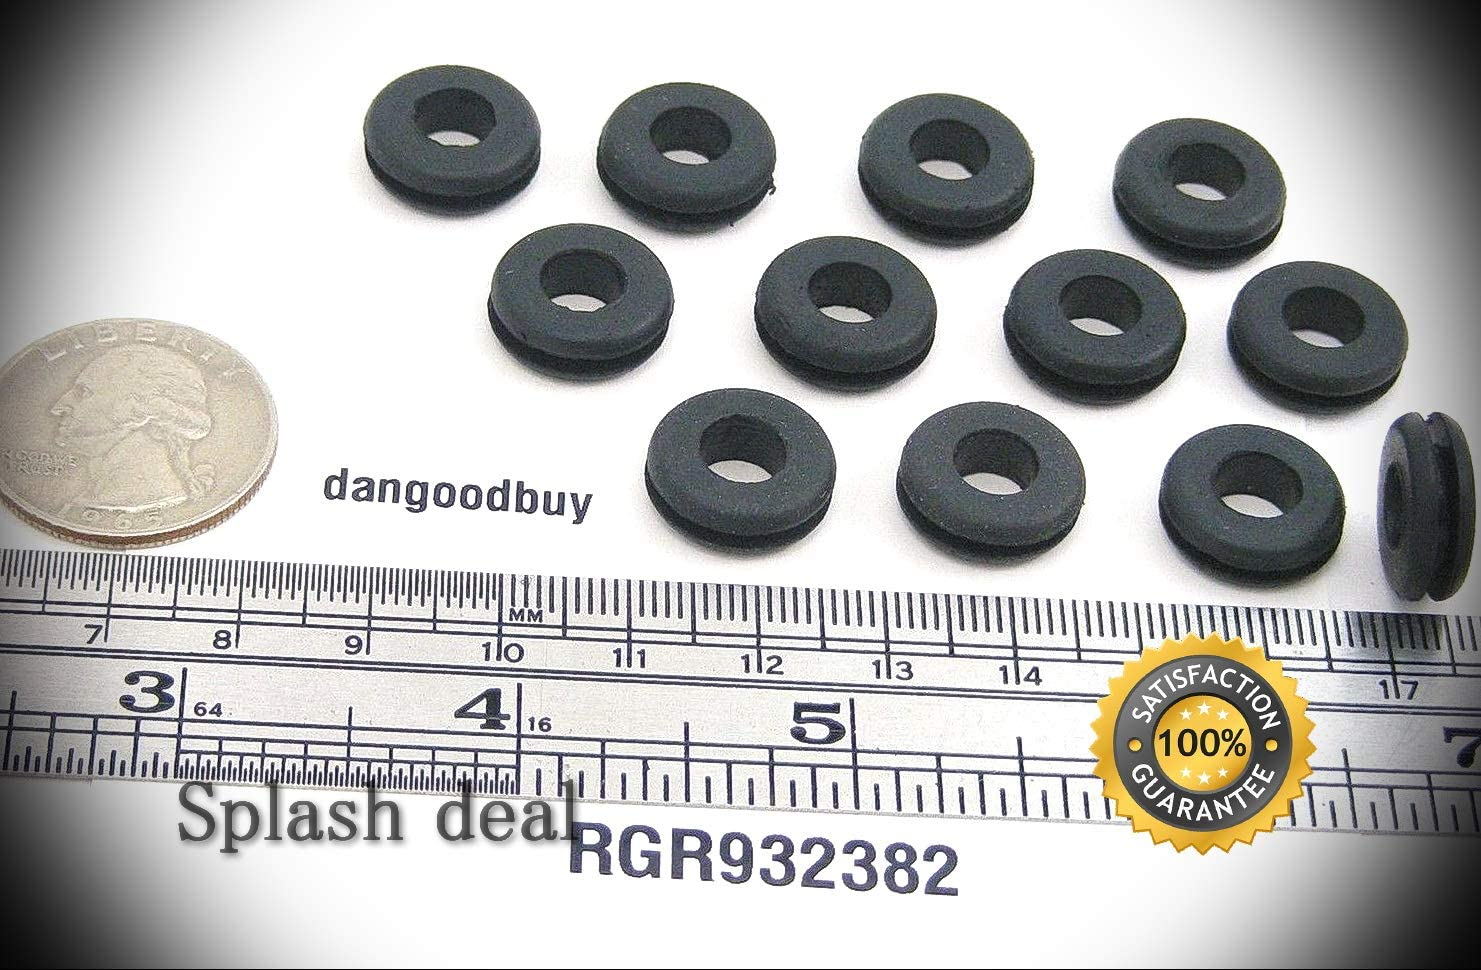 25 Bombing free shipping Rubber Grommets 9 32